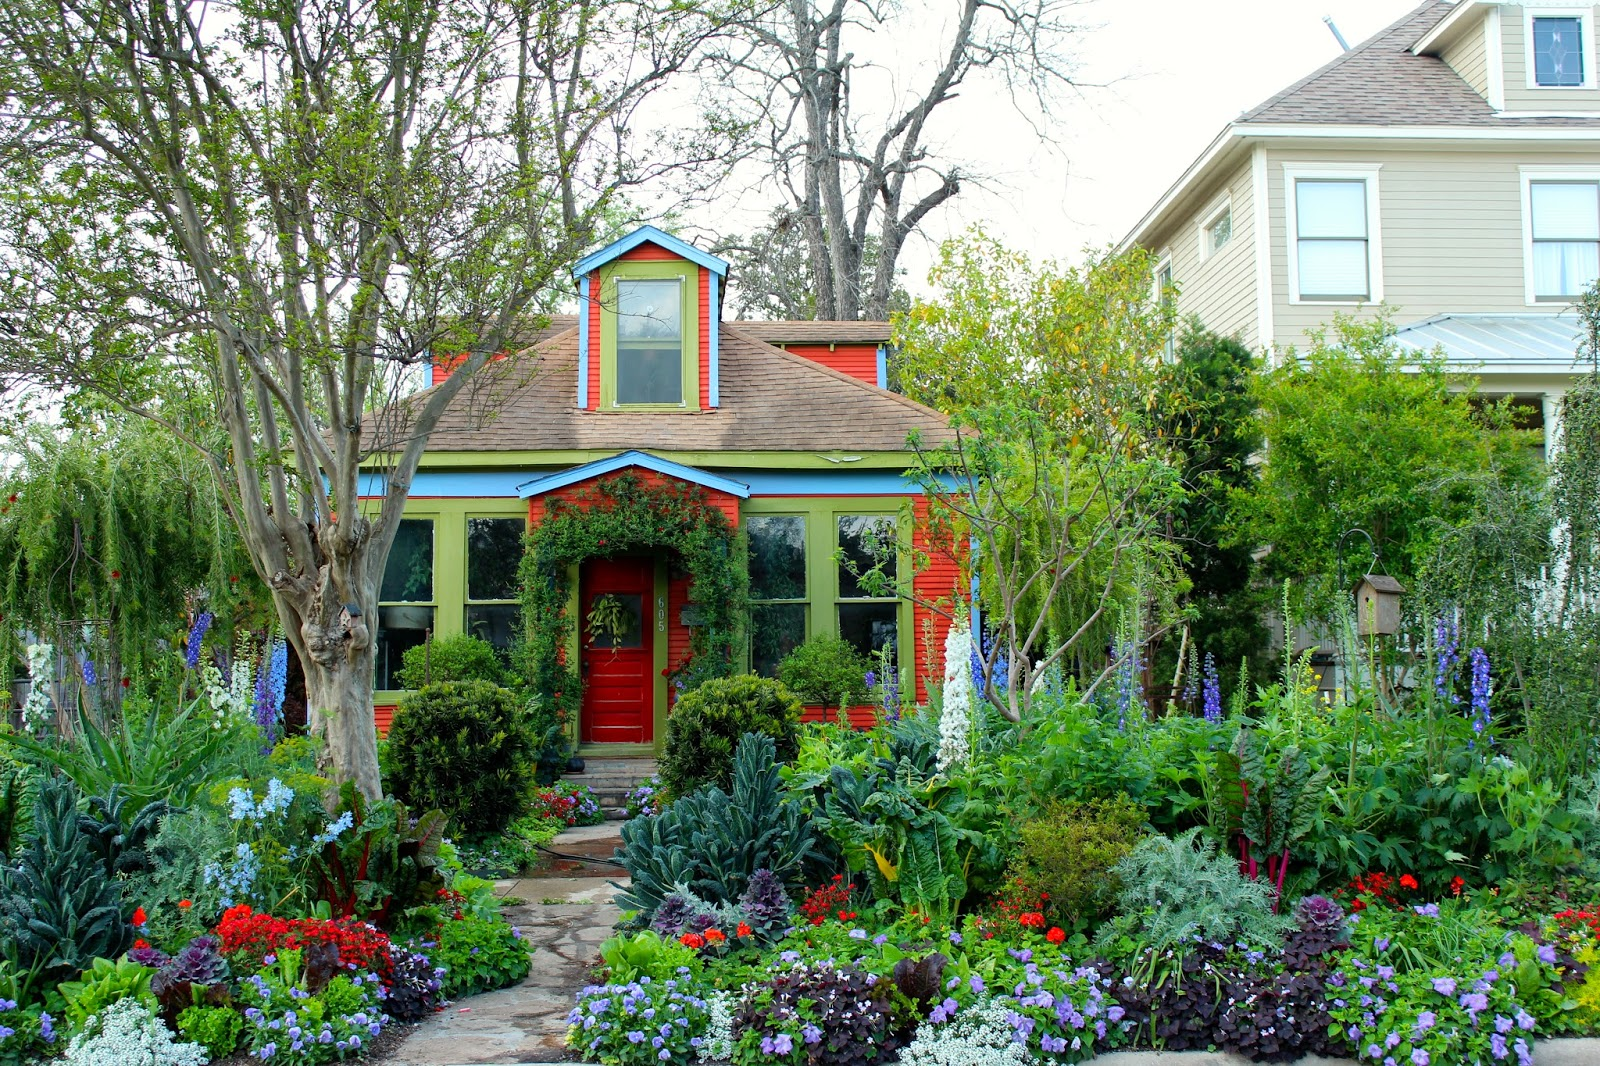 Cottage garden entwined with beautiful edibles highlight of